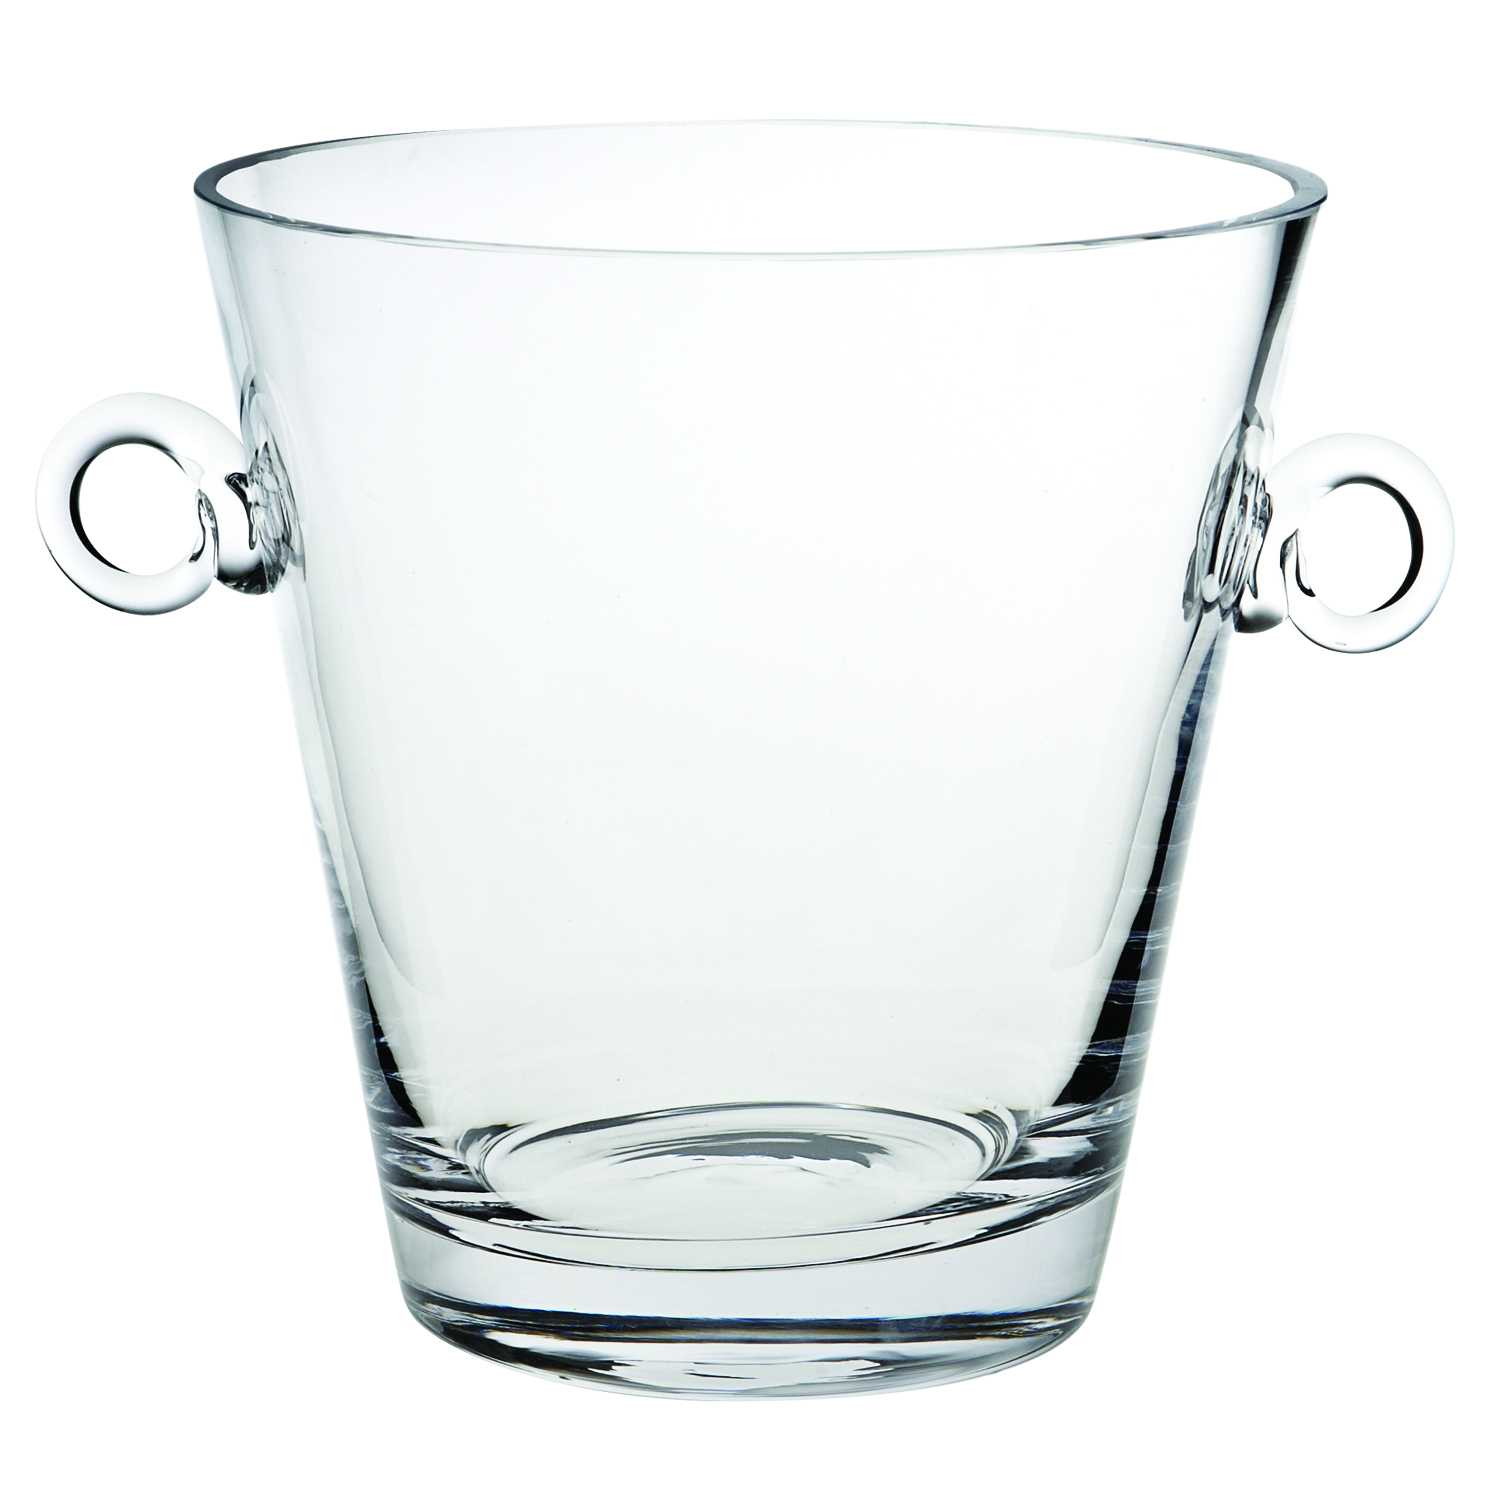 """8"""" Mouth Blown European Glass Ice Bucket or Cooler"""